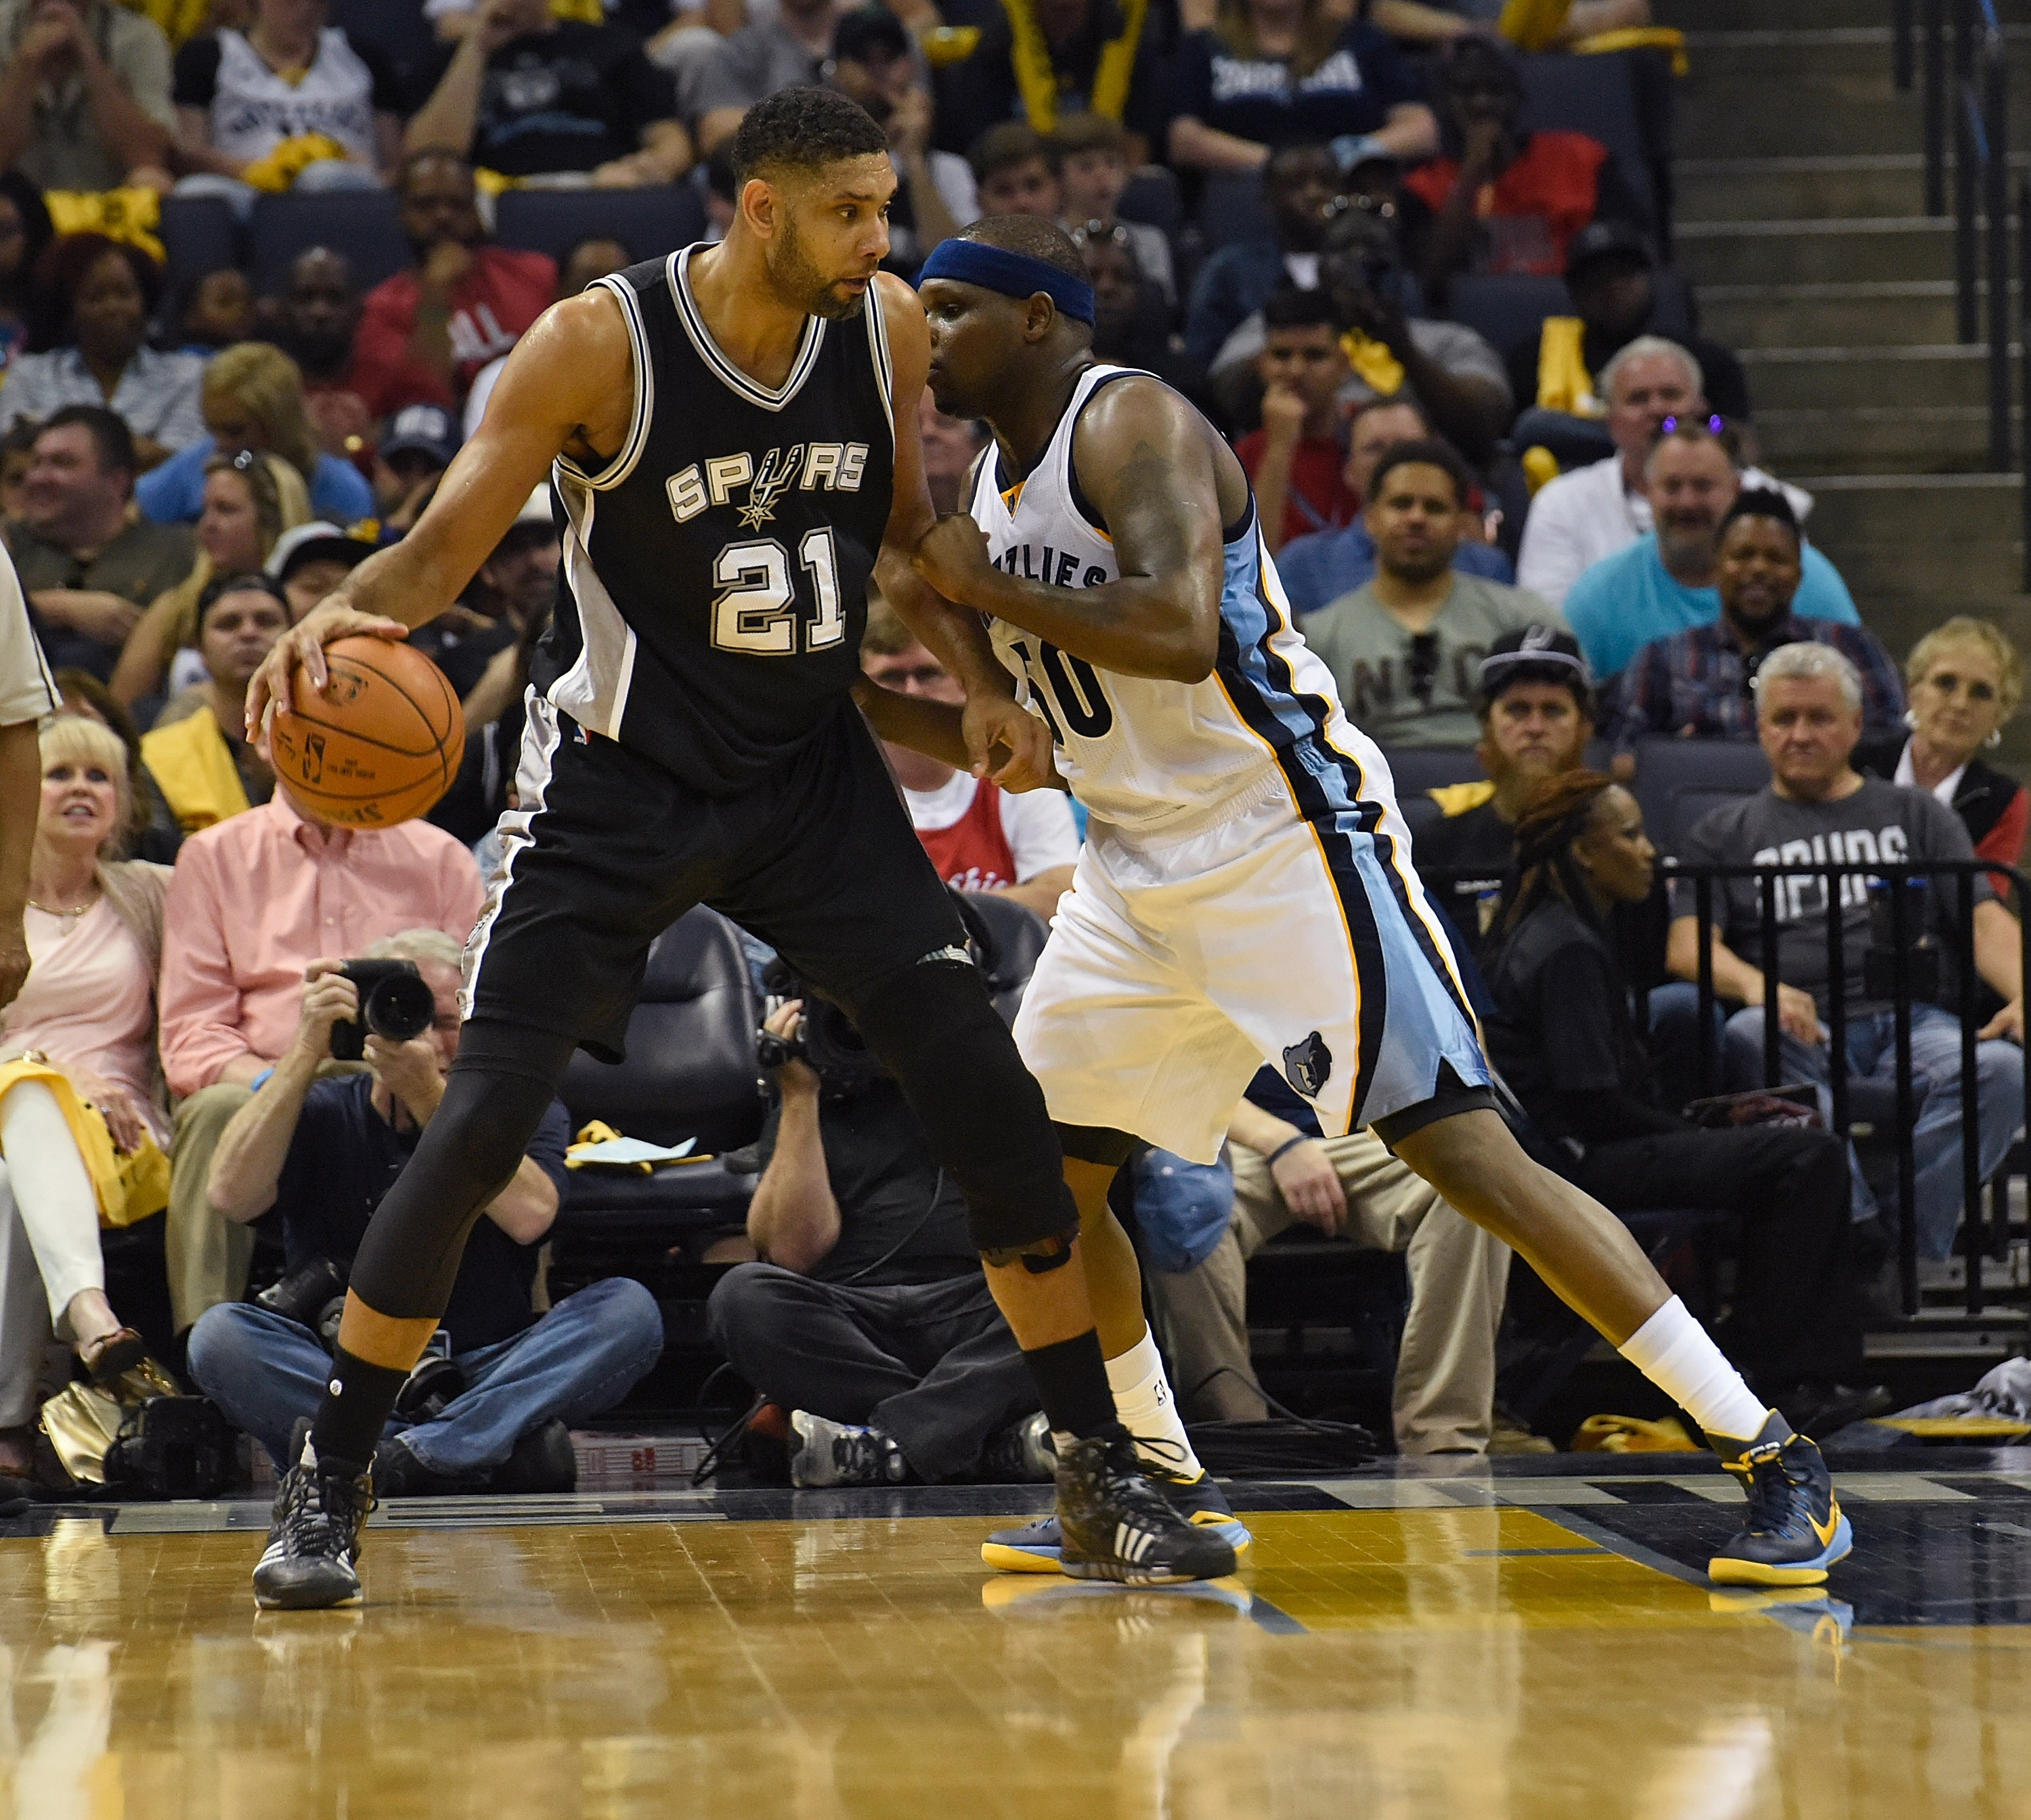 FILE - JULY 11, 2016: It was reported that Tim Duncan of the San Antonio Spurs is retiring from the NBA after 19 seasons July 11, 2016. MEMPHIS, TN - APRIL 24:  Tim Duncan #21 of the San Antonio Spurs dribbles against Zach Randolph #50 of the Memphis Griz